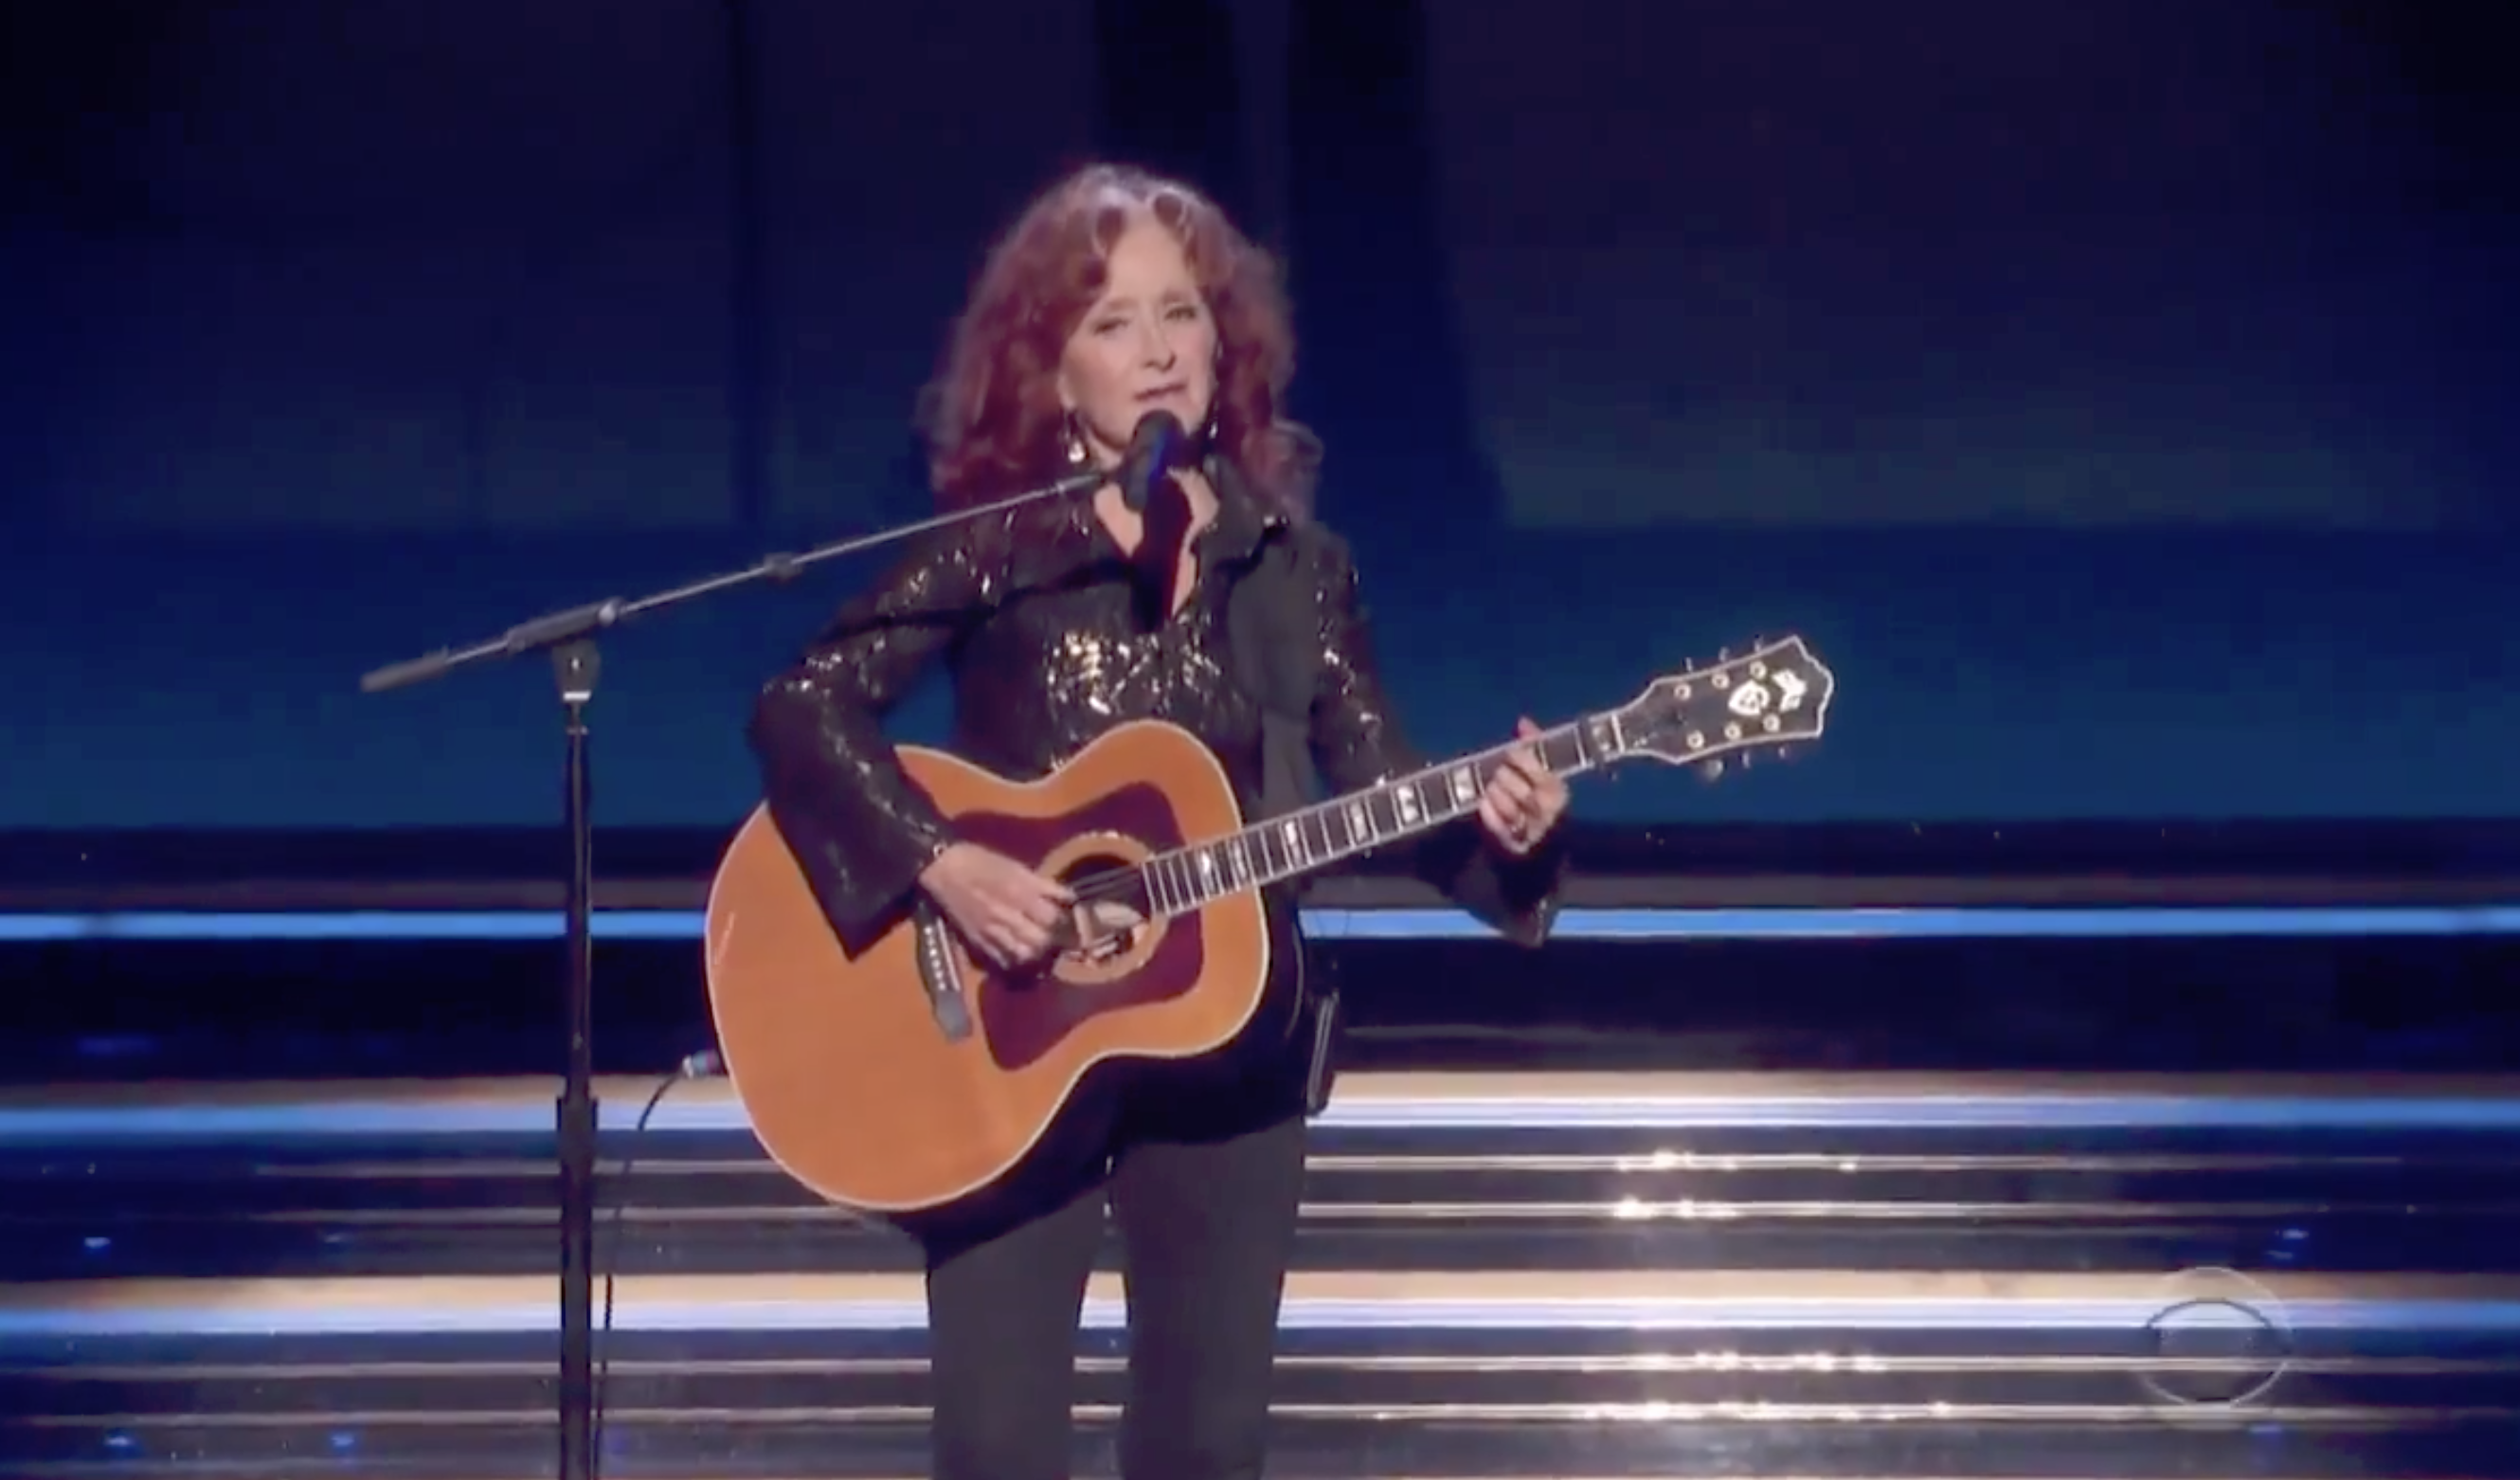 Bonnie Raitt Pays Tribute to John Prine With Soulful 'Angel From Montgomery' at 2020 Grammys